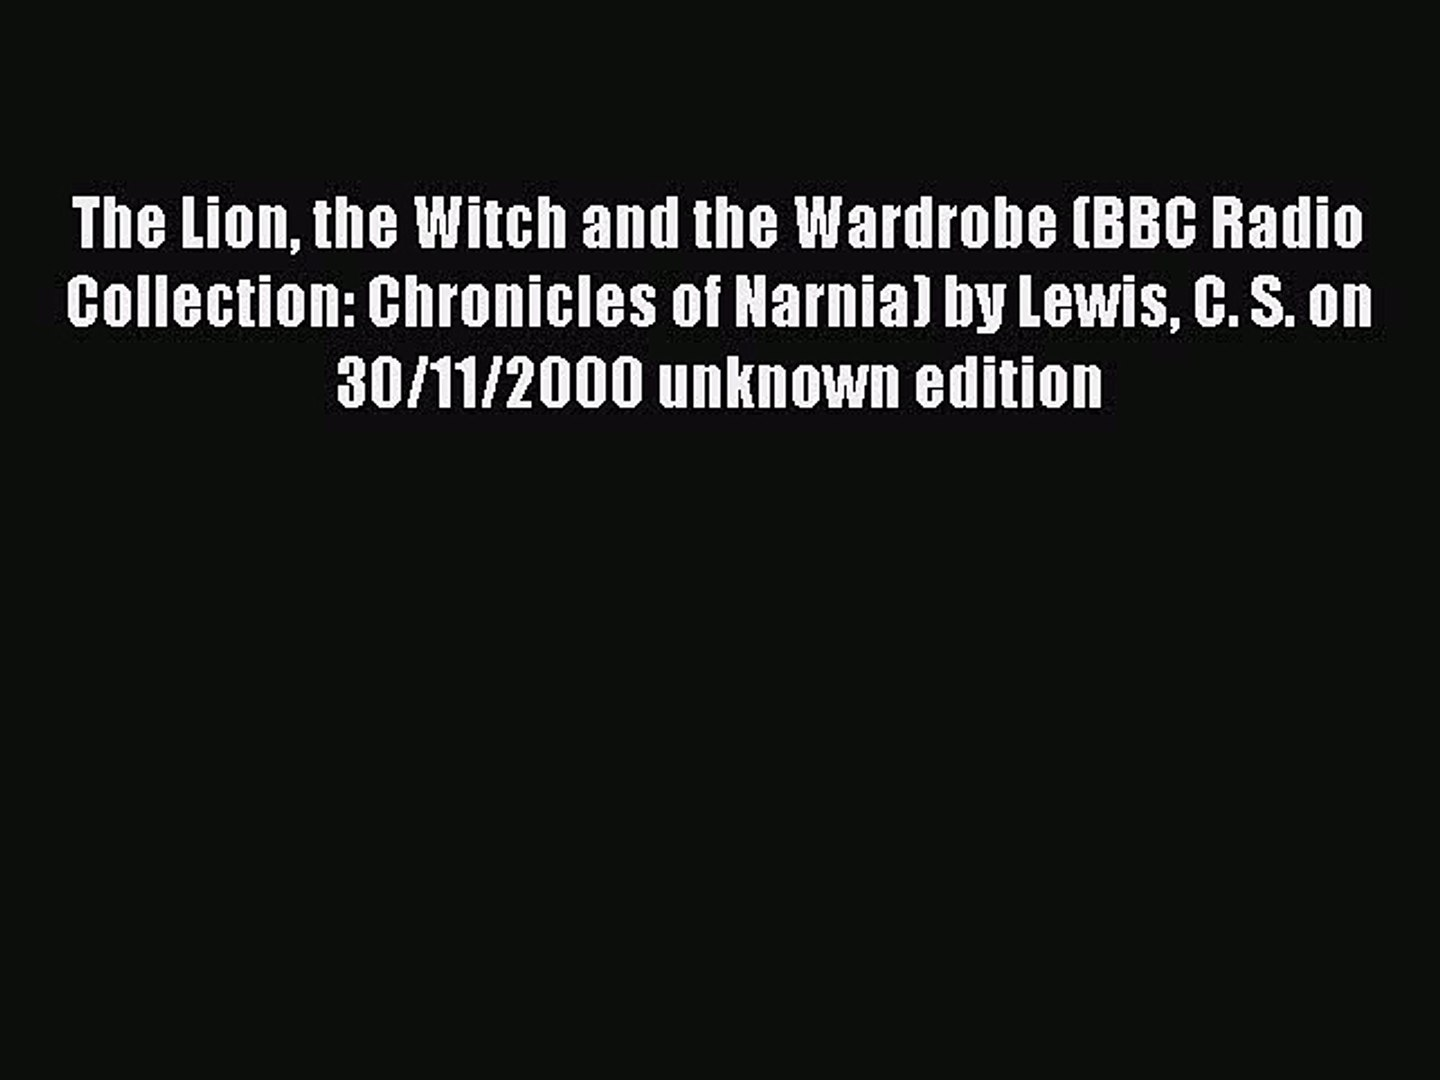 Read The Lion the Witch and the Wardrobe (BBC Radio Collection: Chronicles  of Narnia) by Lewis